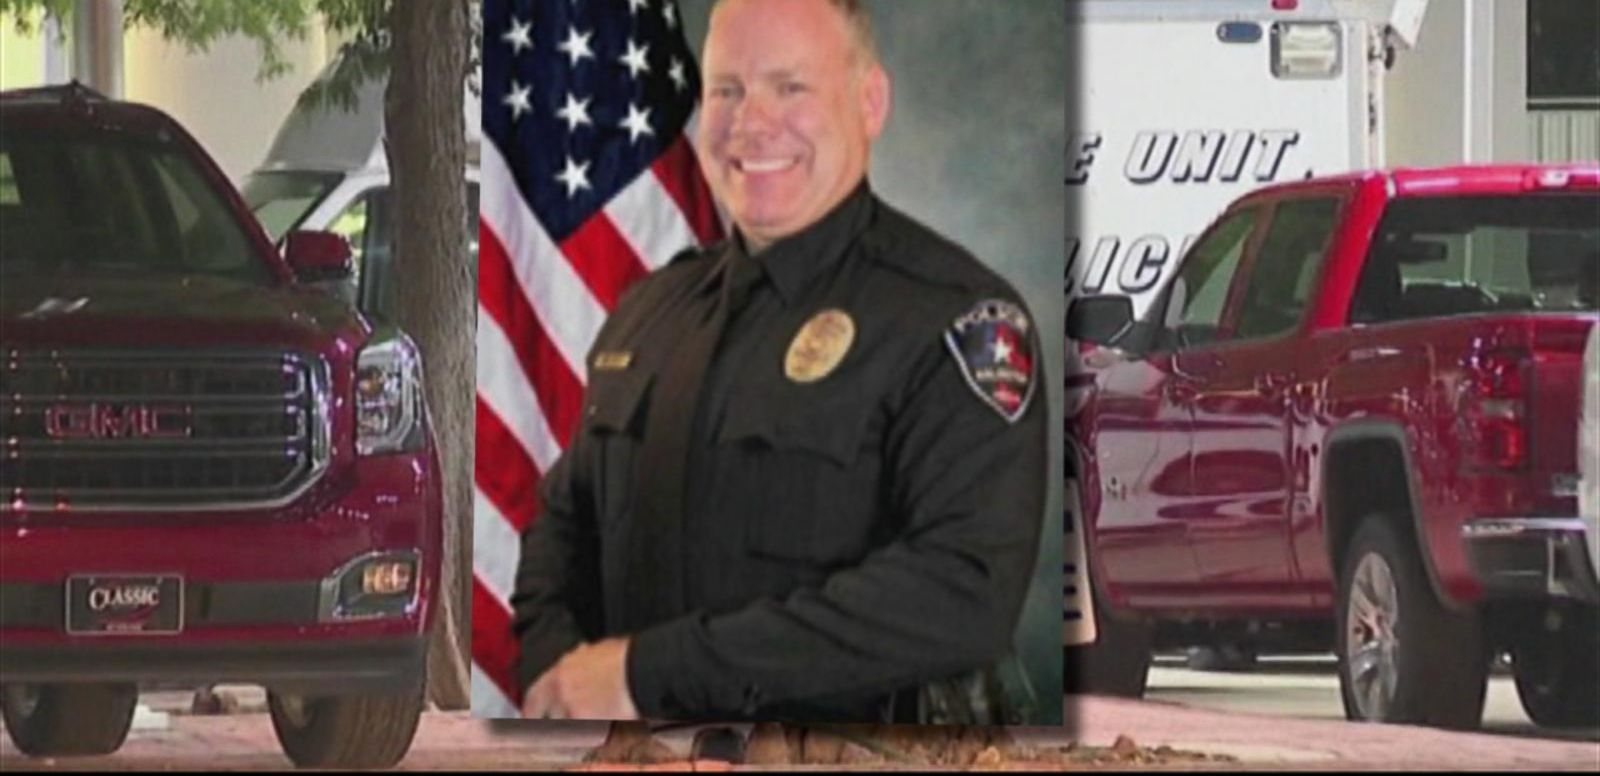 VIDEO: Texas Officer Investigated After Shooting Unarmed Black Teen